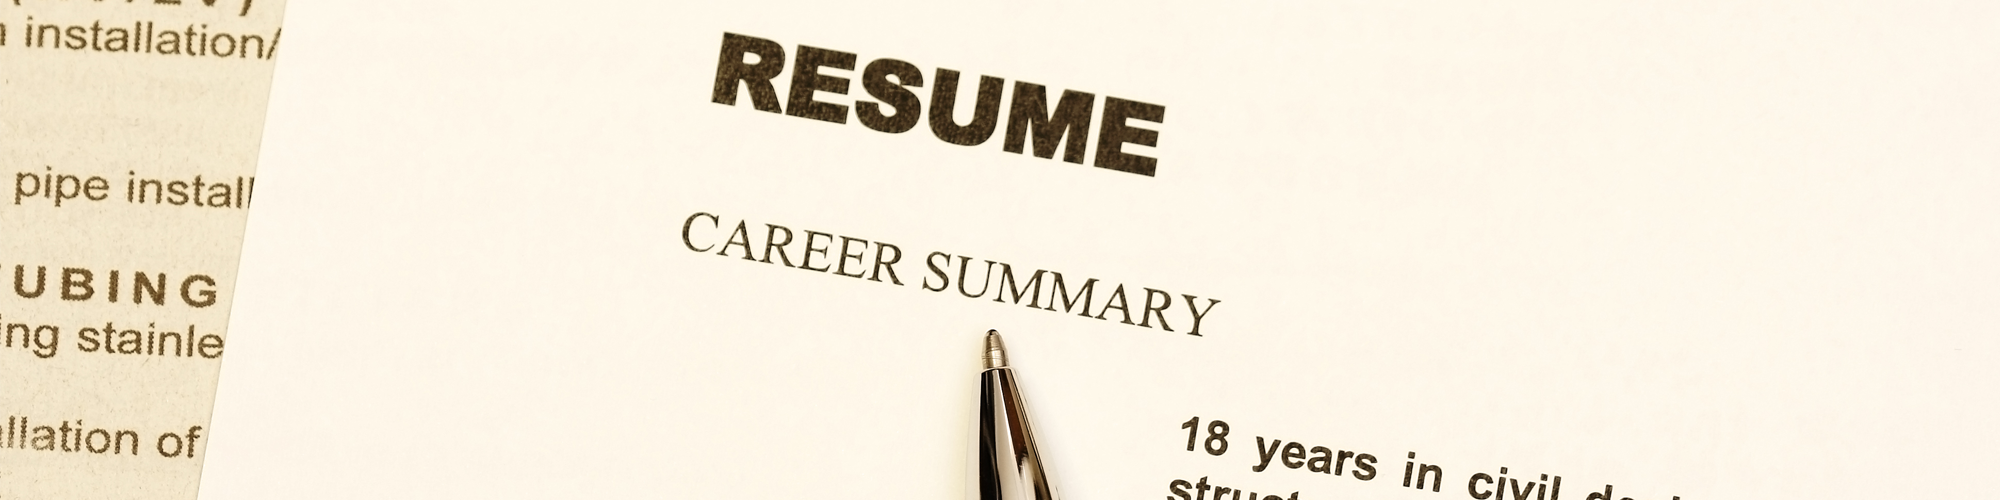 resume writing services cincinnati ohio